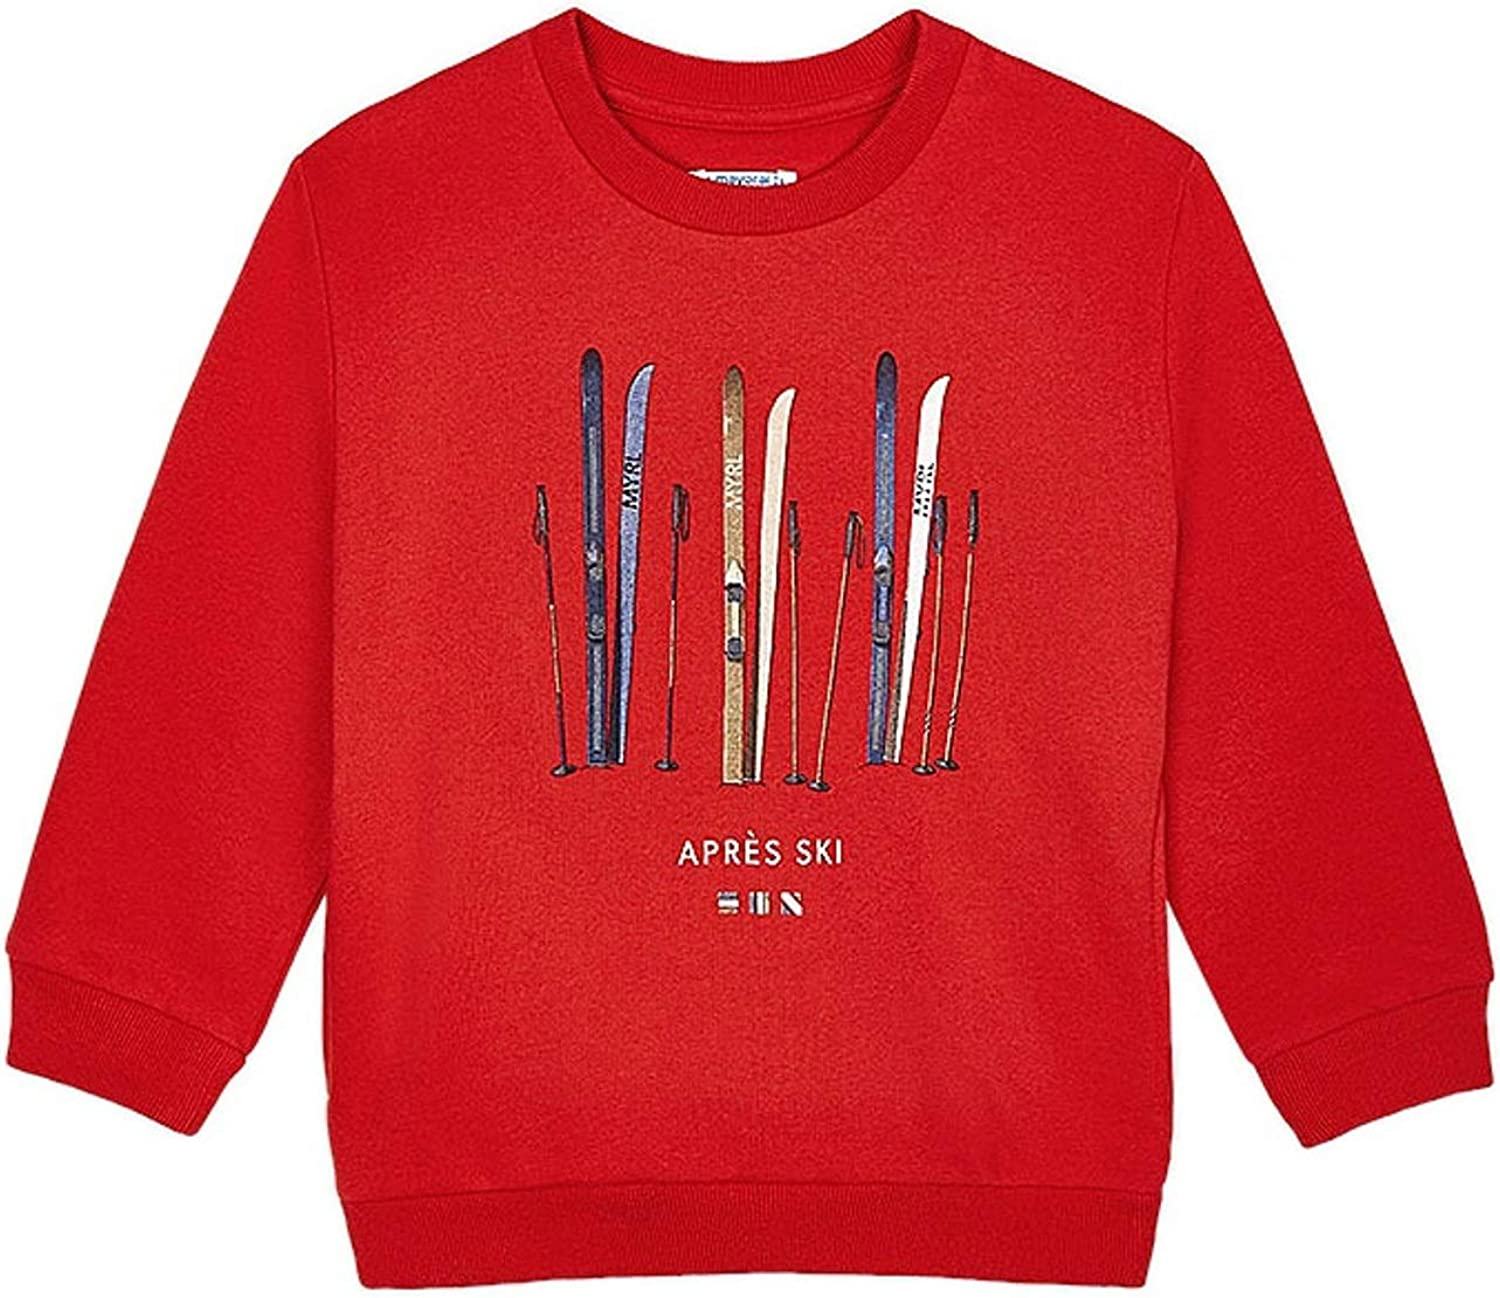 Mayoral - Pullover for Boys - 4458, Flame